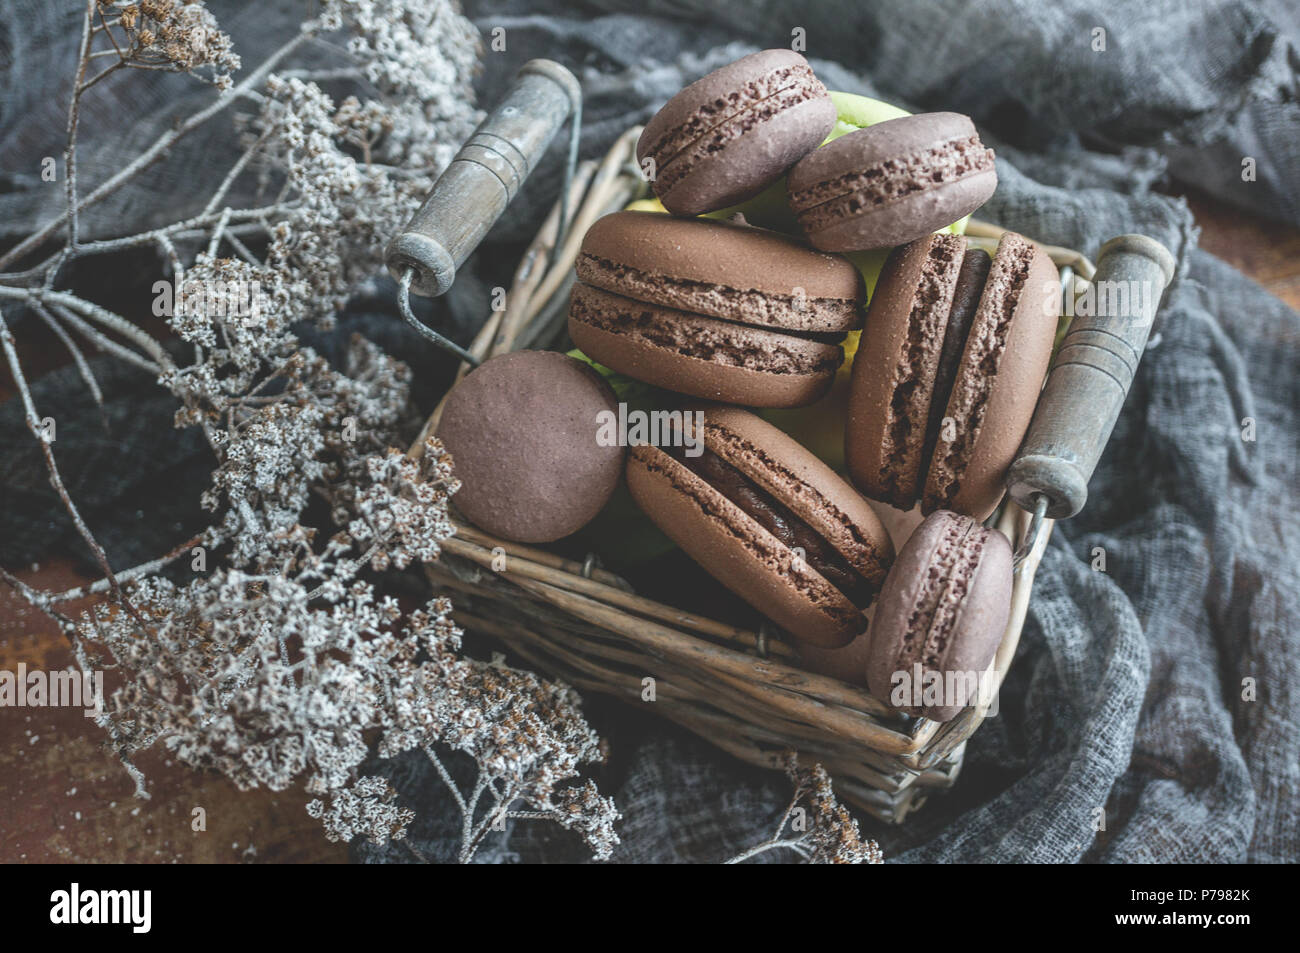 Freshly baked macaroons in wicker basket with handles with small white flowers on wooden background. Selective focus. Stock Photo